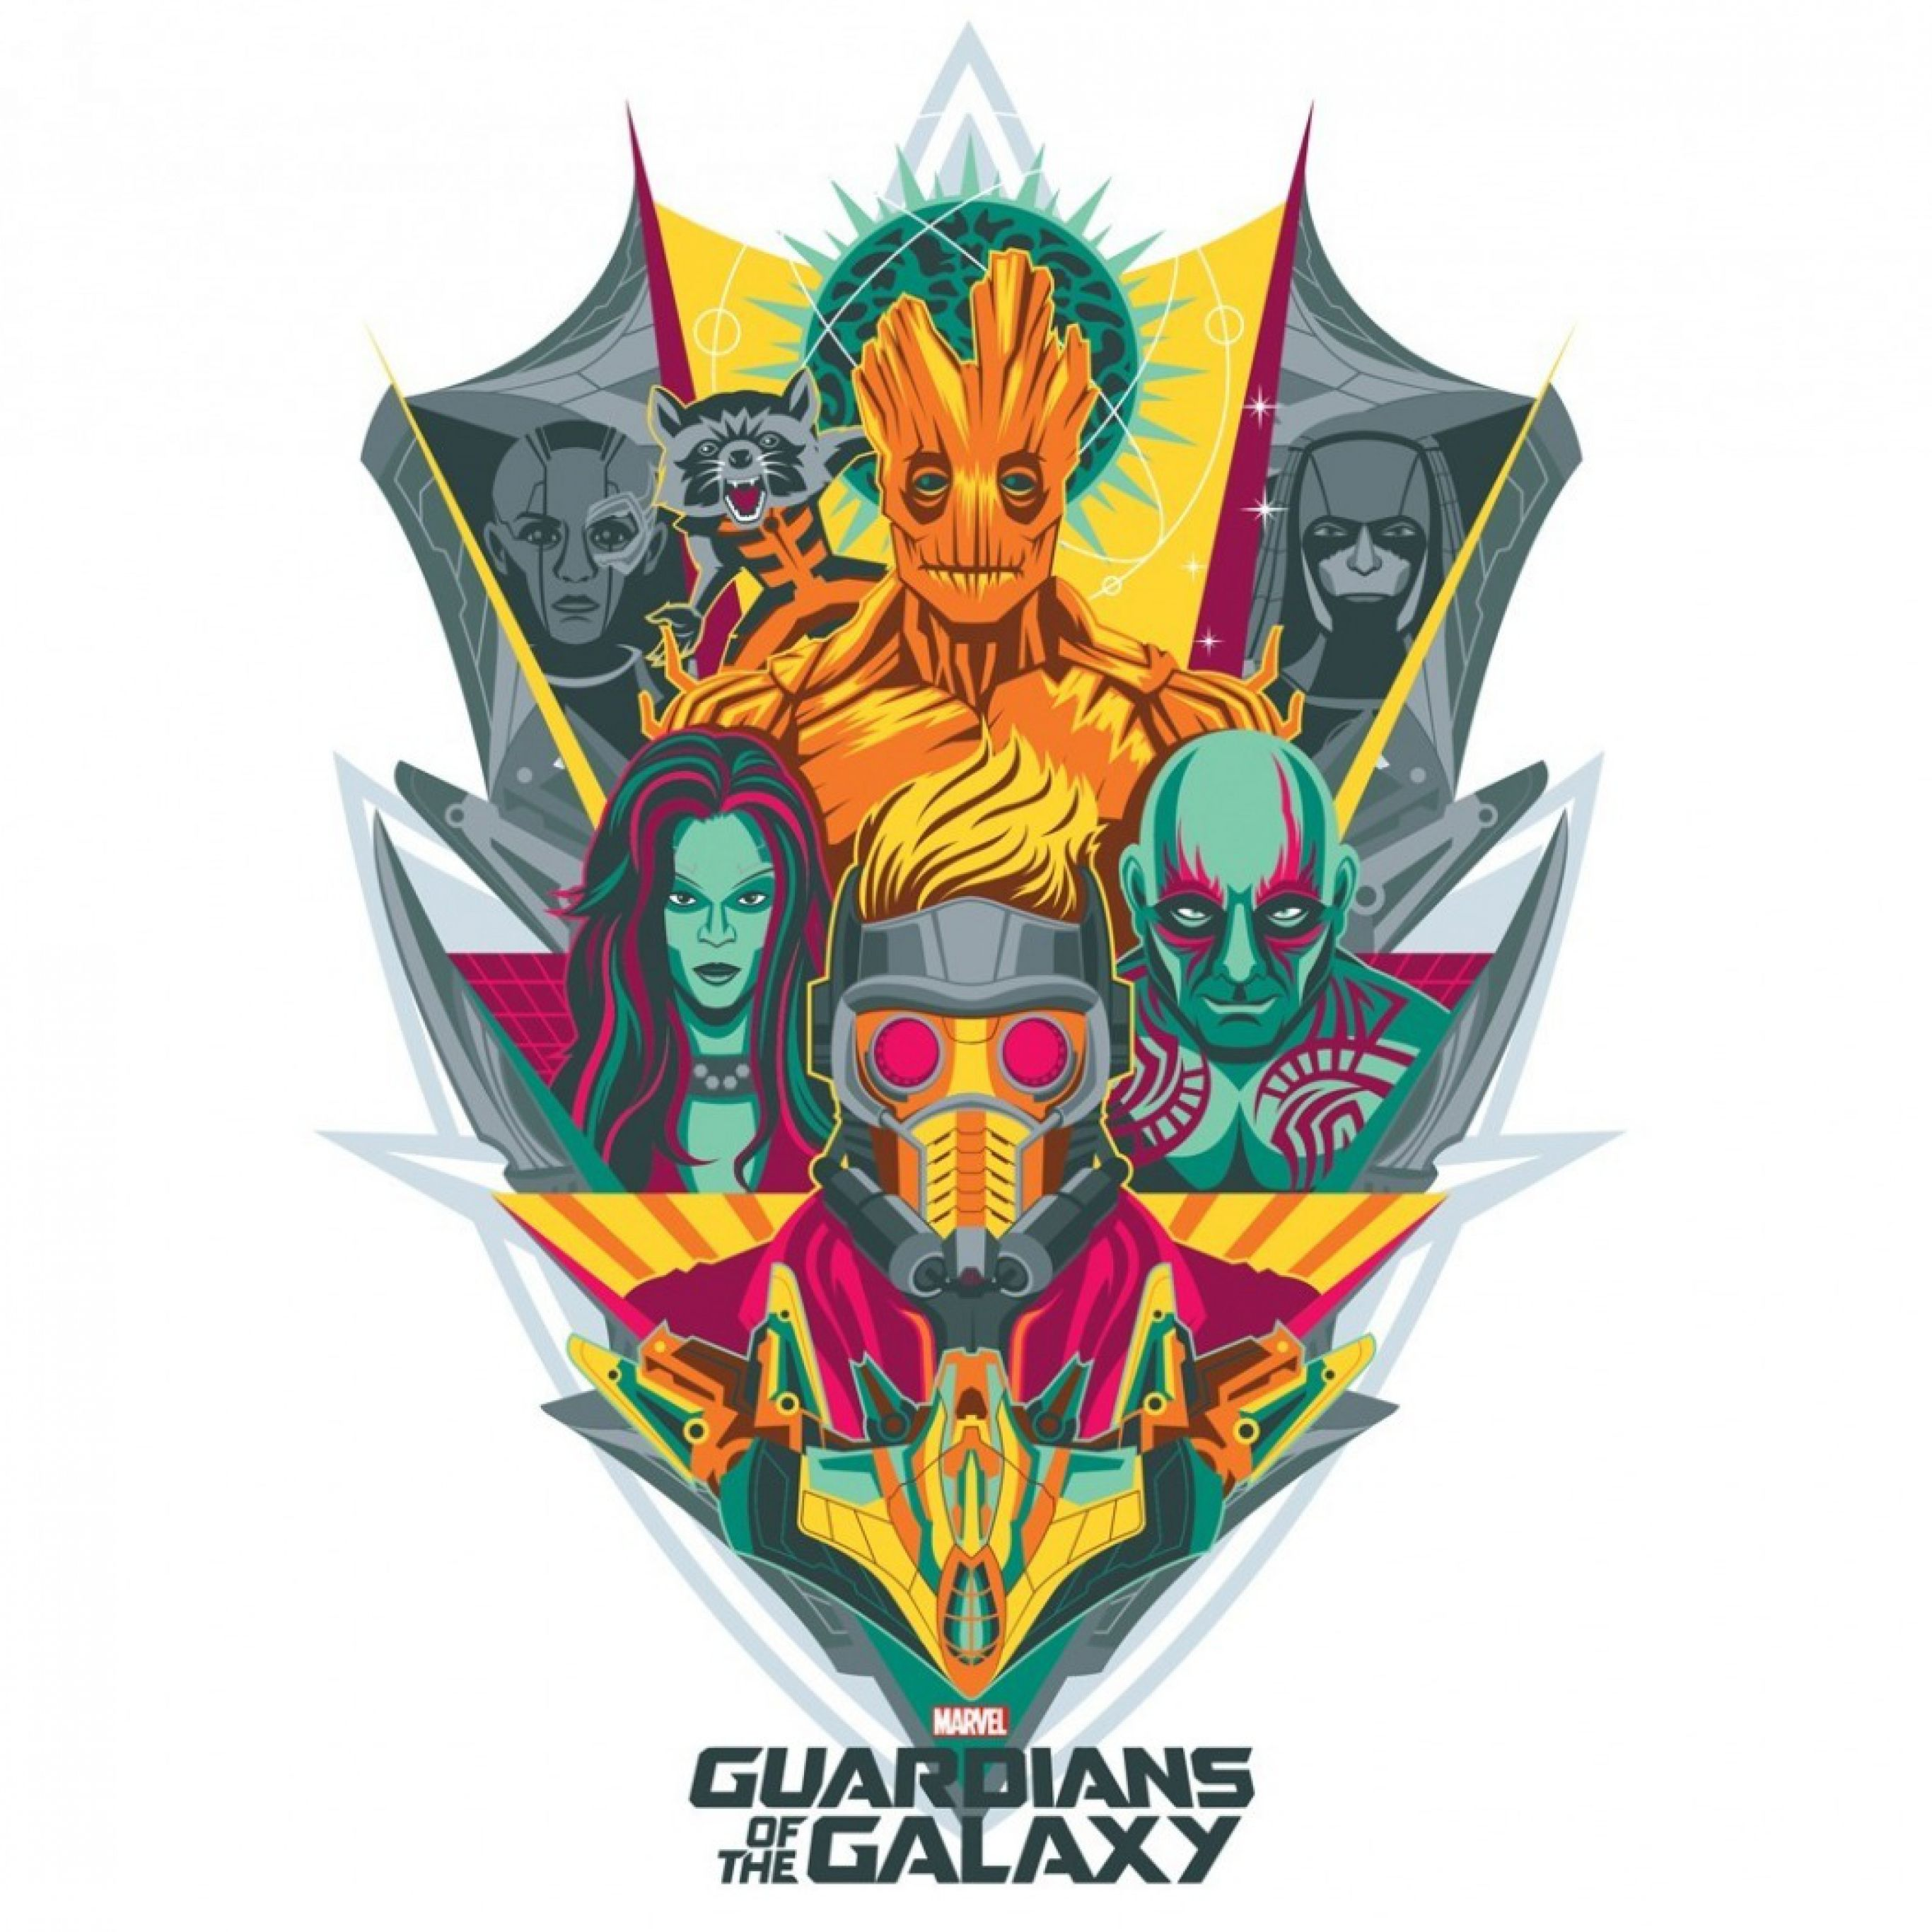 bb1a6ae33 2732x2732 Wallpaper guardians of the galaxy, logo, marvel, star-lord,  gamora, drax the destroyer, groot, rocket